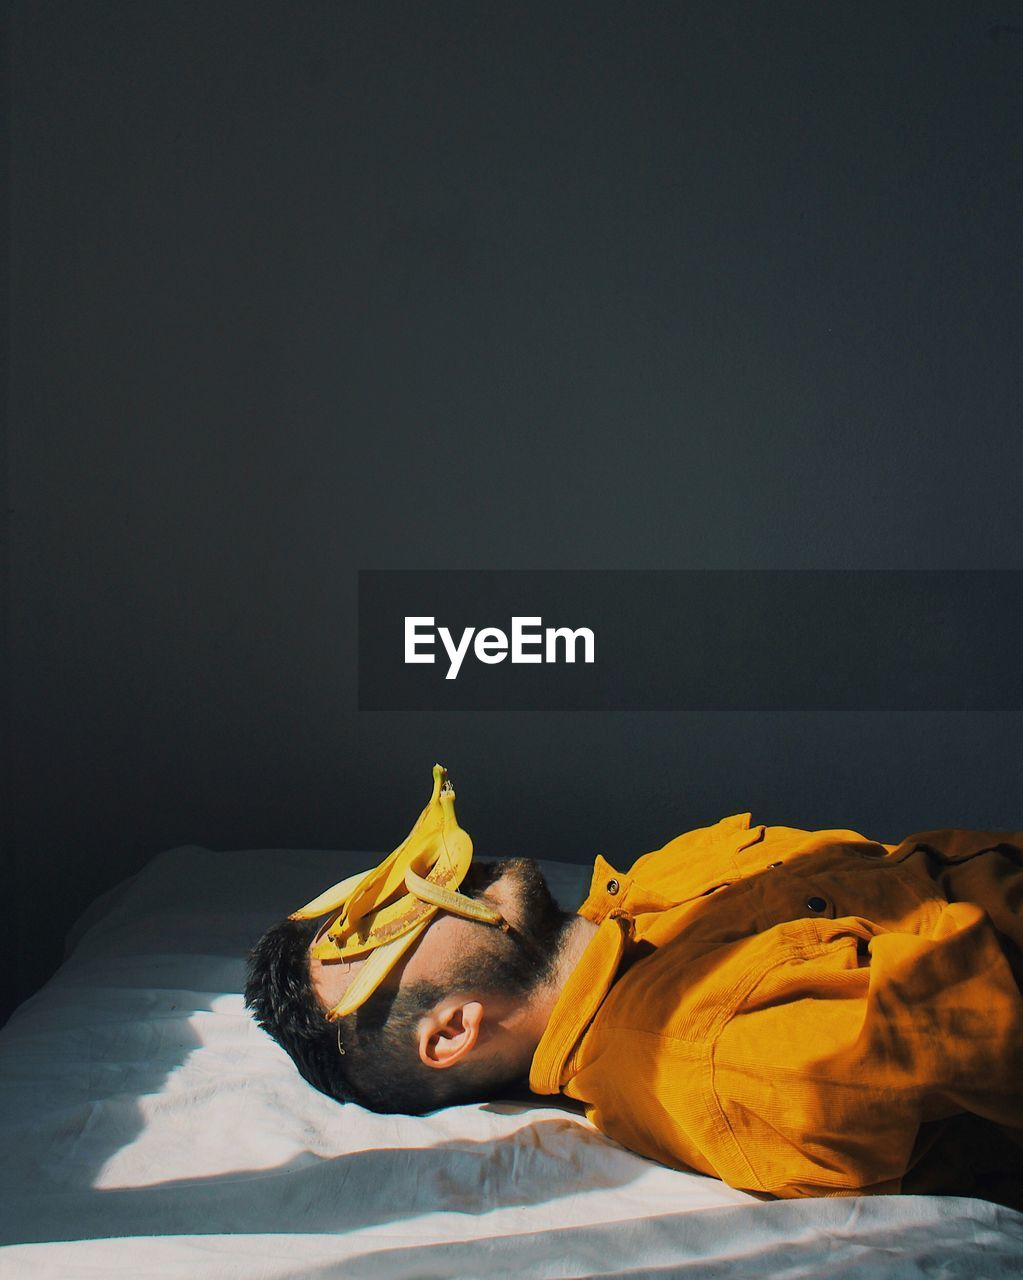 copy space, one person, indoors, lying down, studio shot, eyes closed, relaxation, bed, sleeping, young adult, real people, young men, furniture, men, front view, domestic room, black background, yellow, contemplation